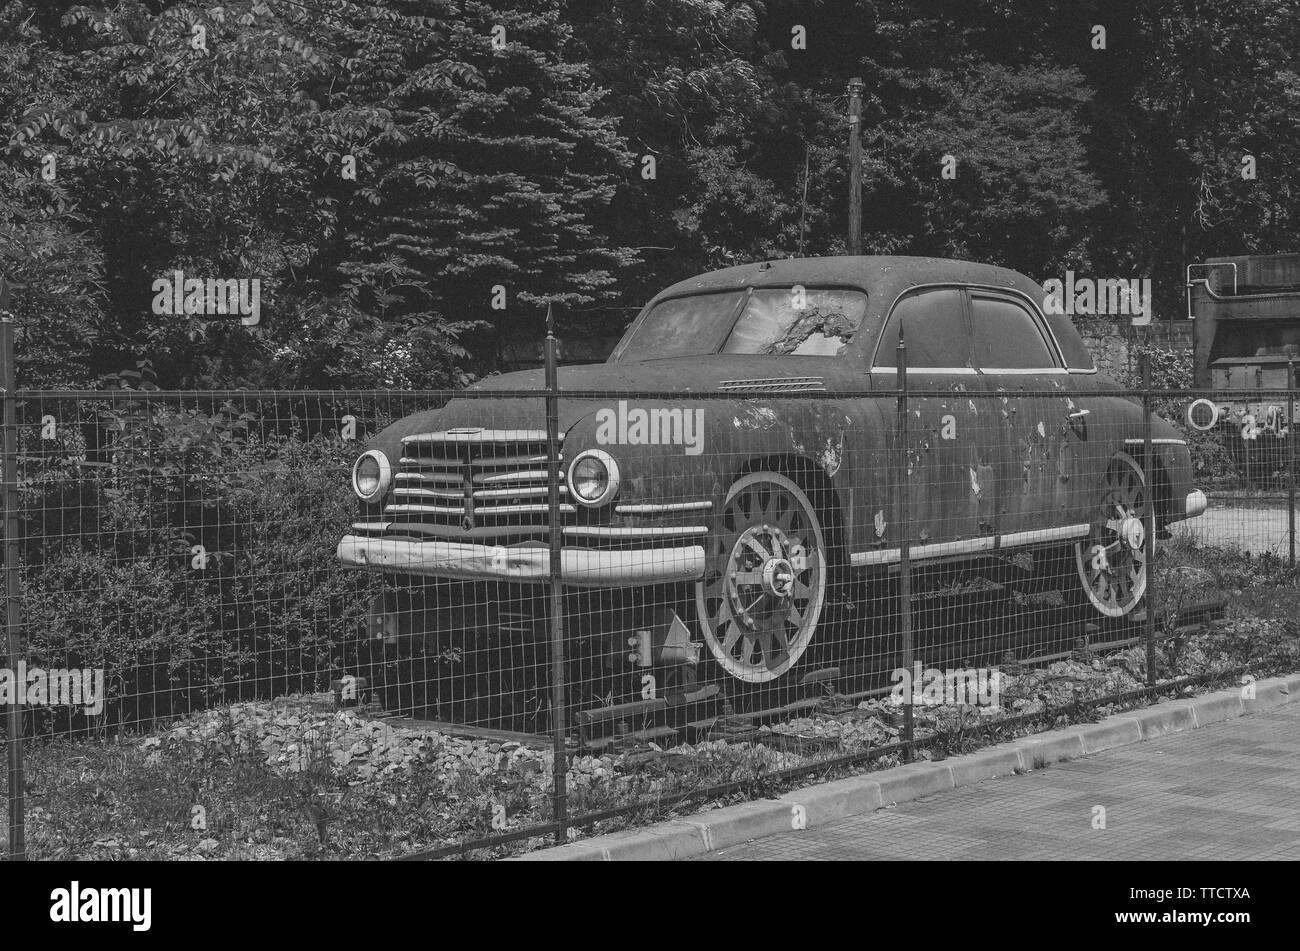 Old Fashion Cars >> Here We Have An Old Old Fashioned Car Whose Significance